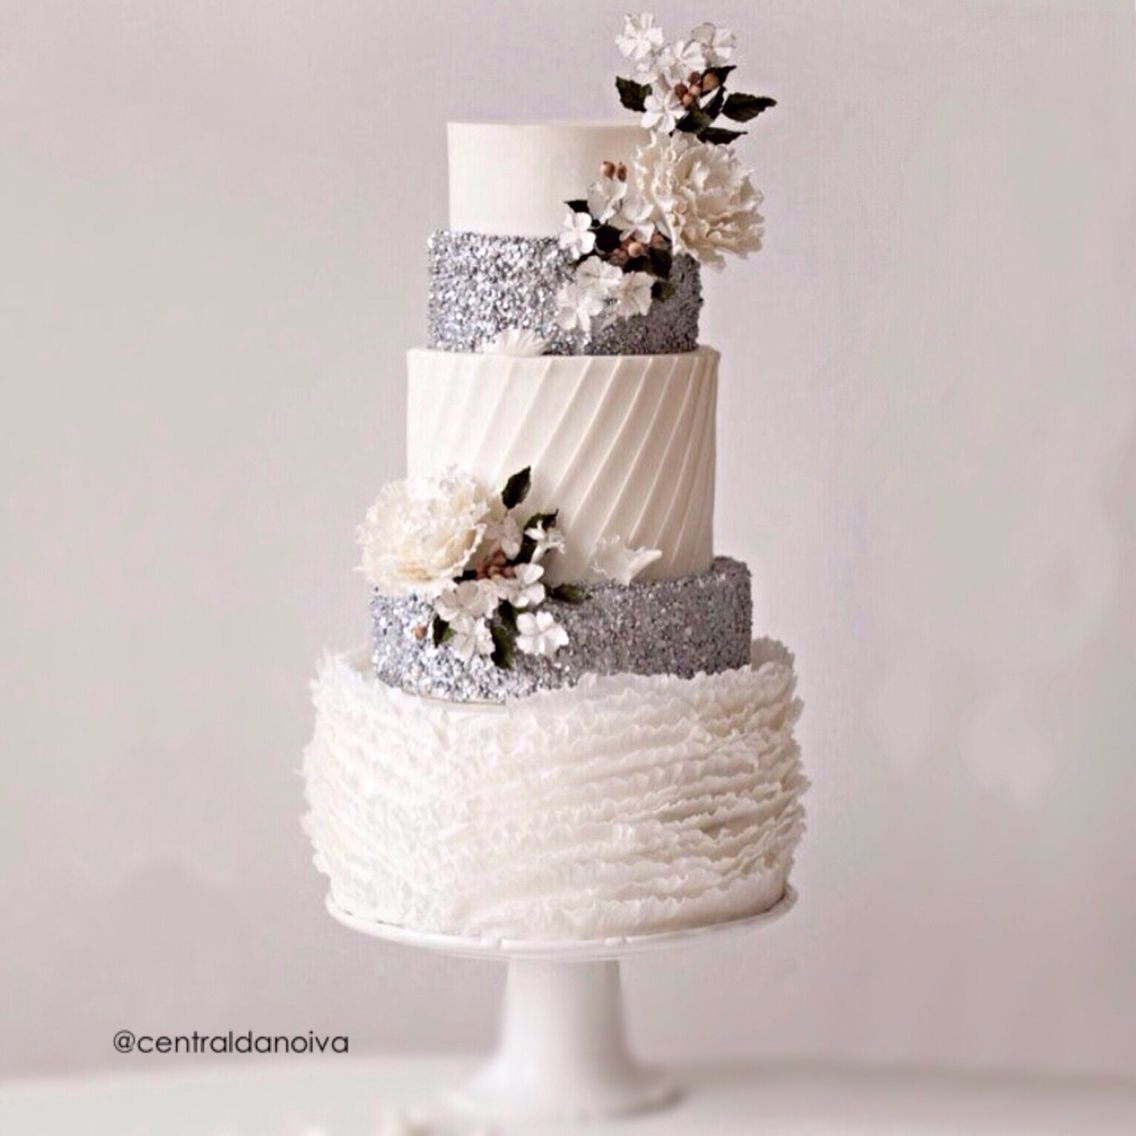 Lindo Prata e Branco. | cake | Pinterest | Wedding cake, Cake and ...